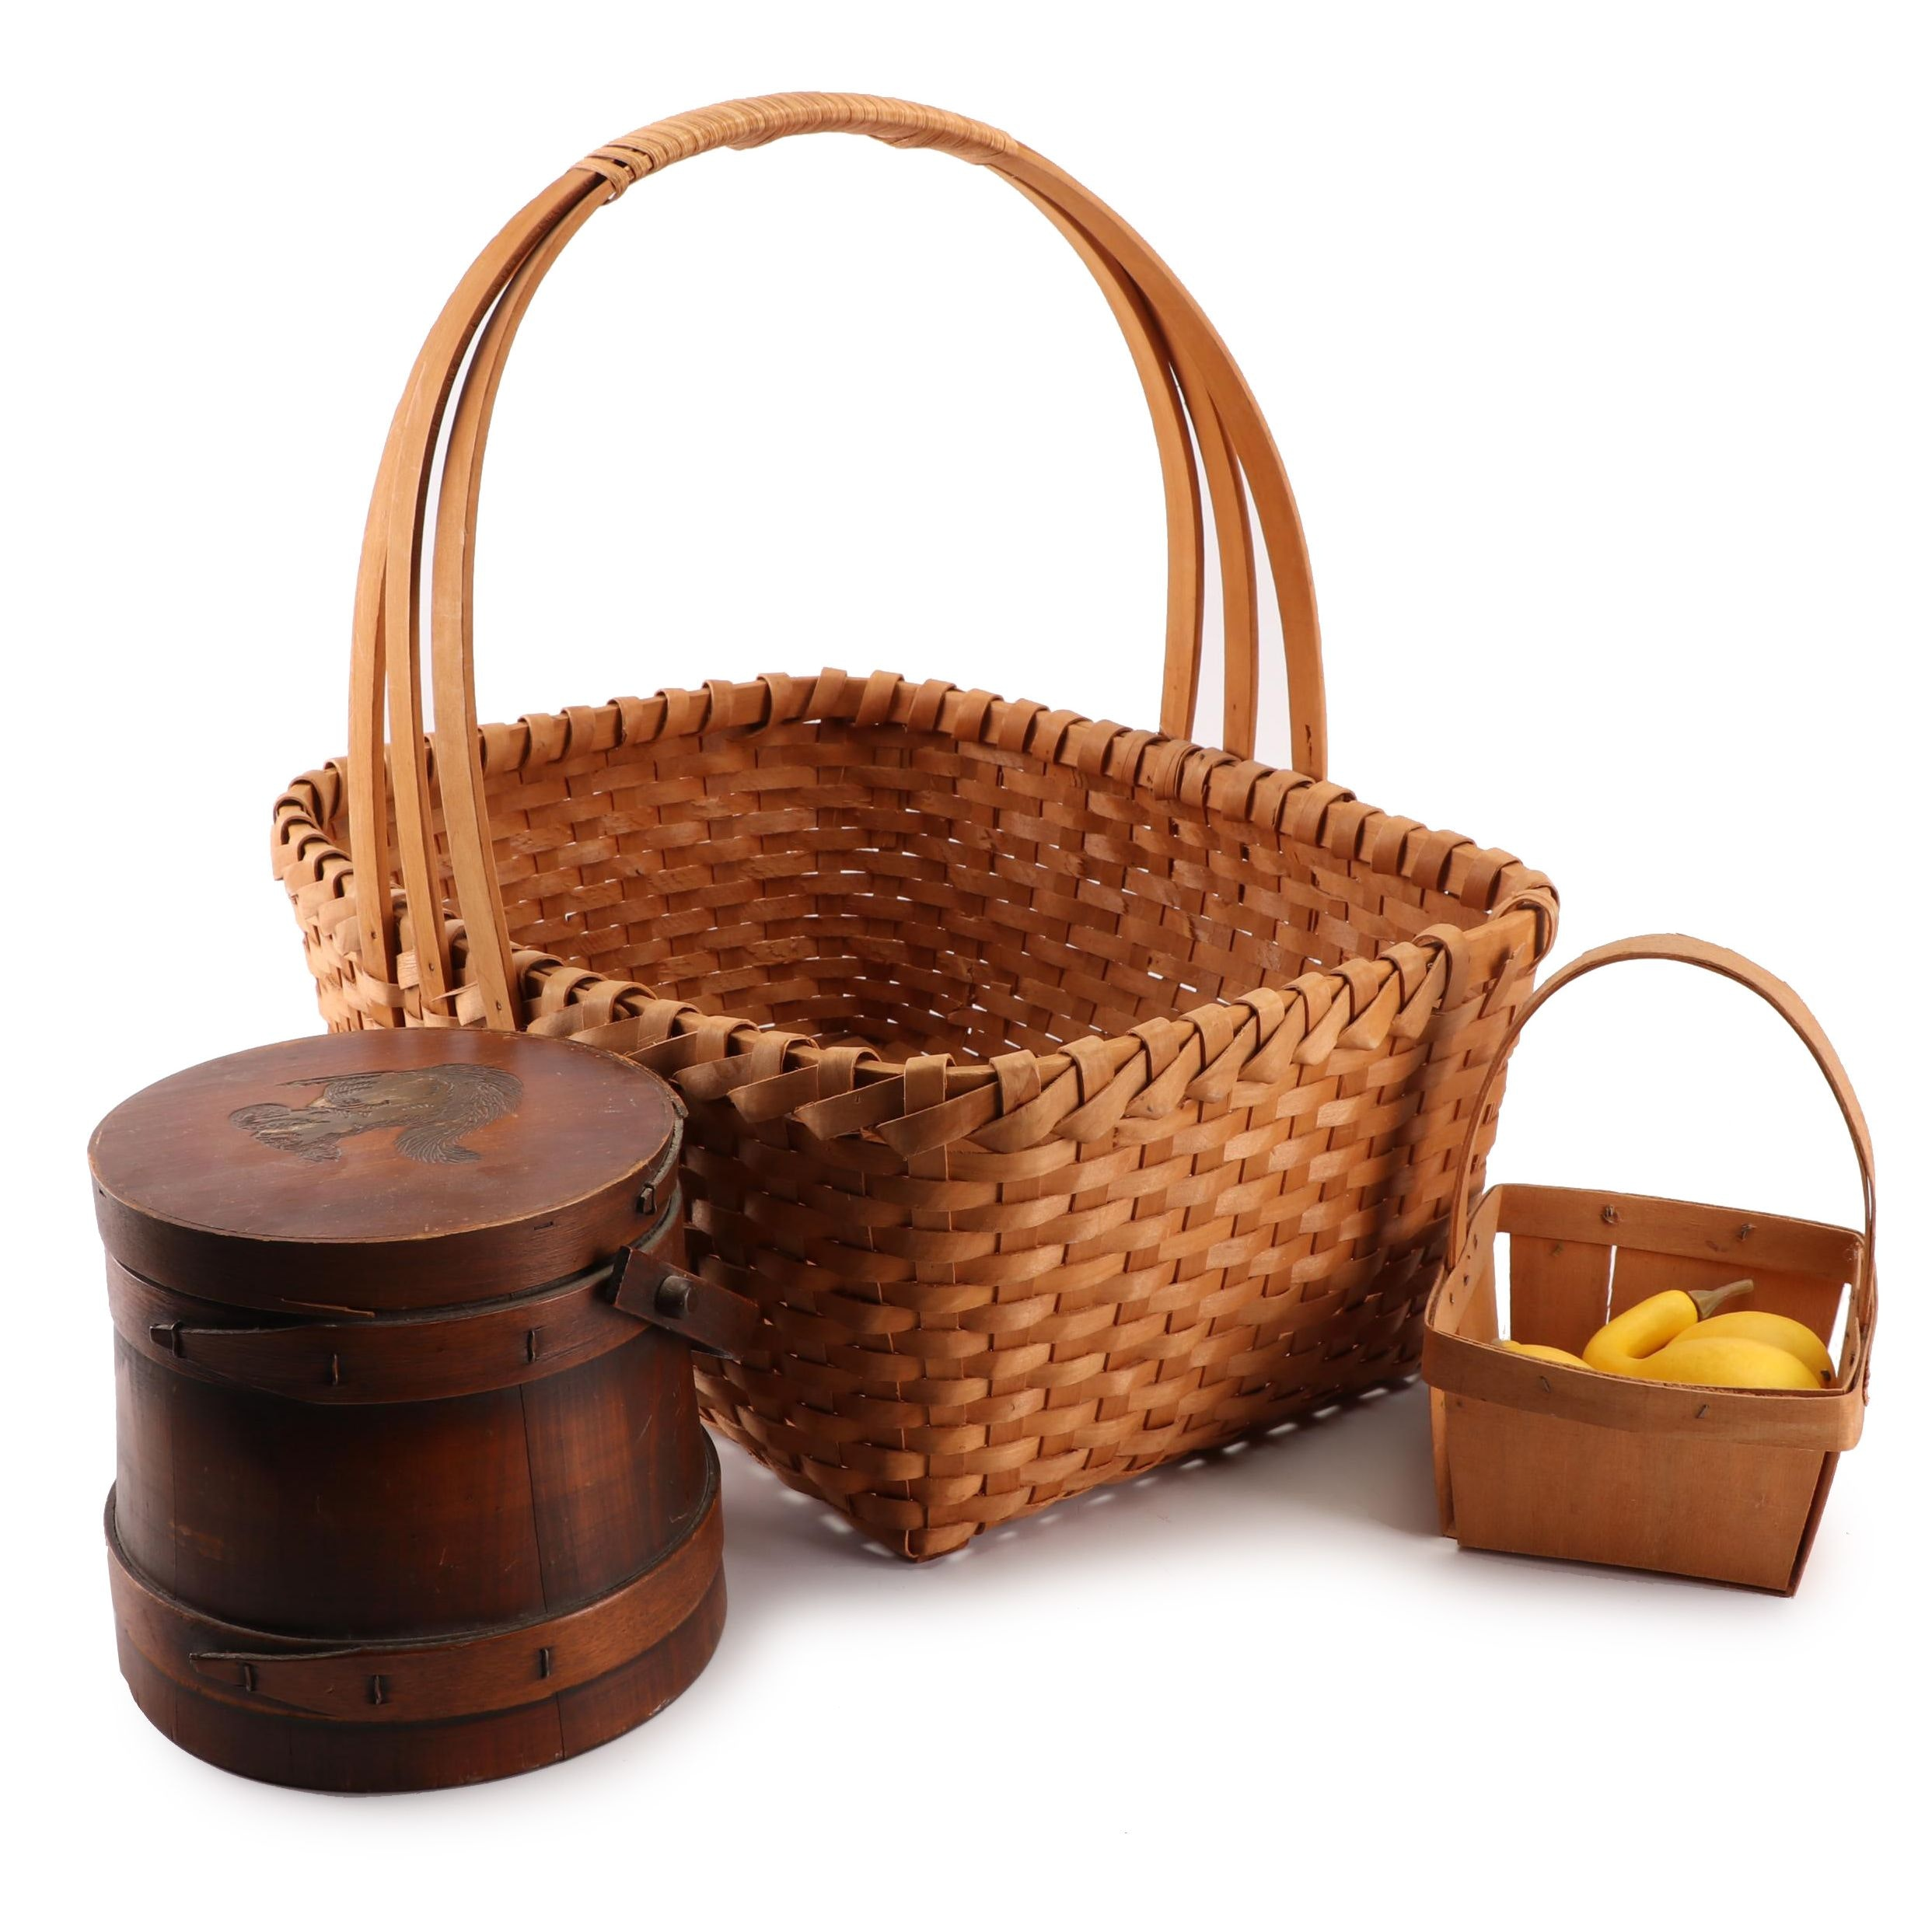 Woven Baskets, Shaker Style Box with Carved Squirrel Lid and Faux Gourds